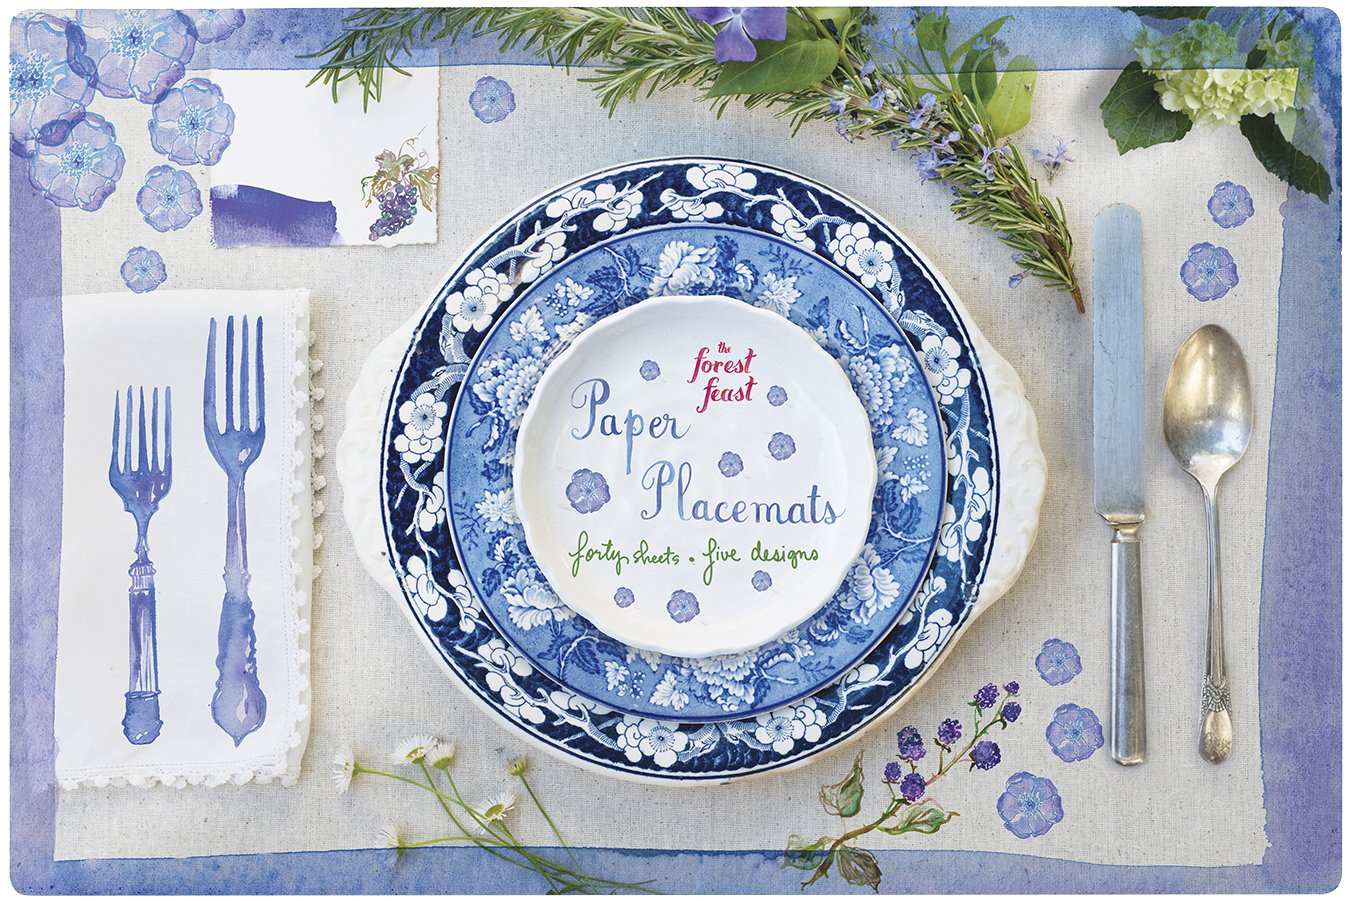 Forest Feast Paper Placemats Designs product image